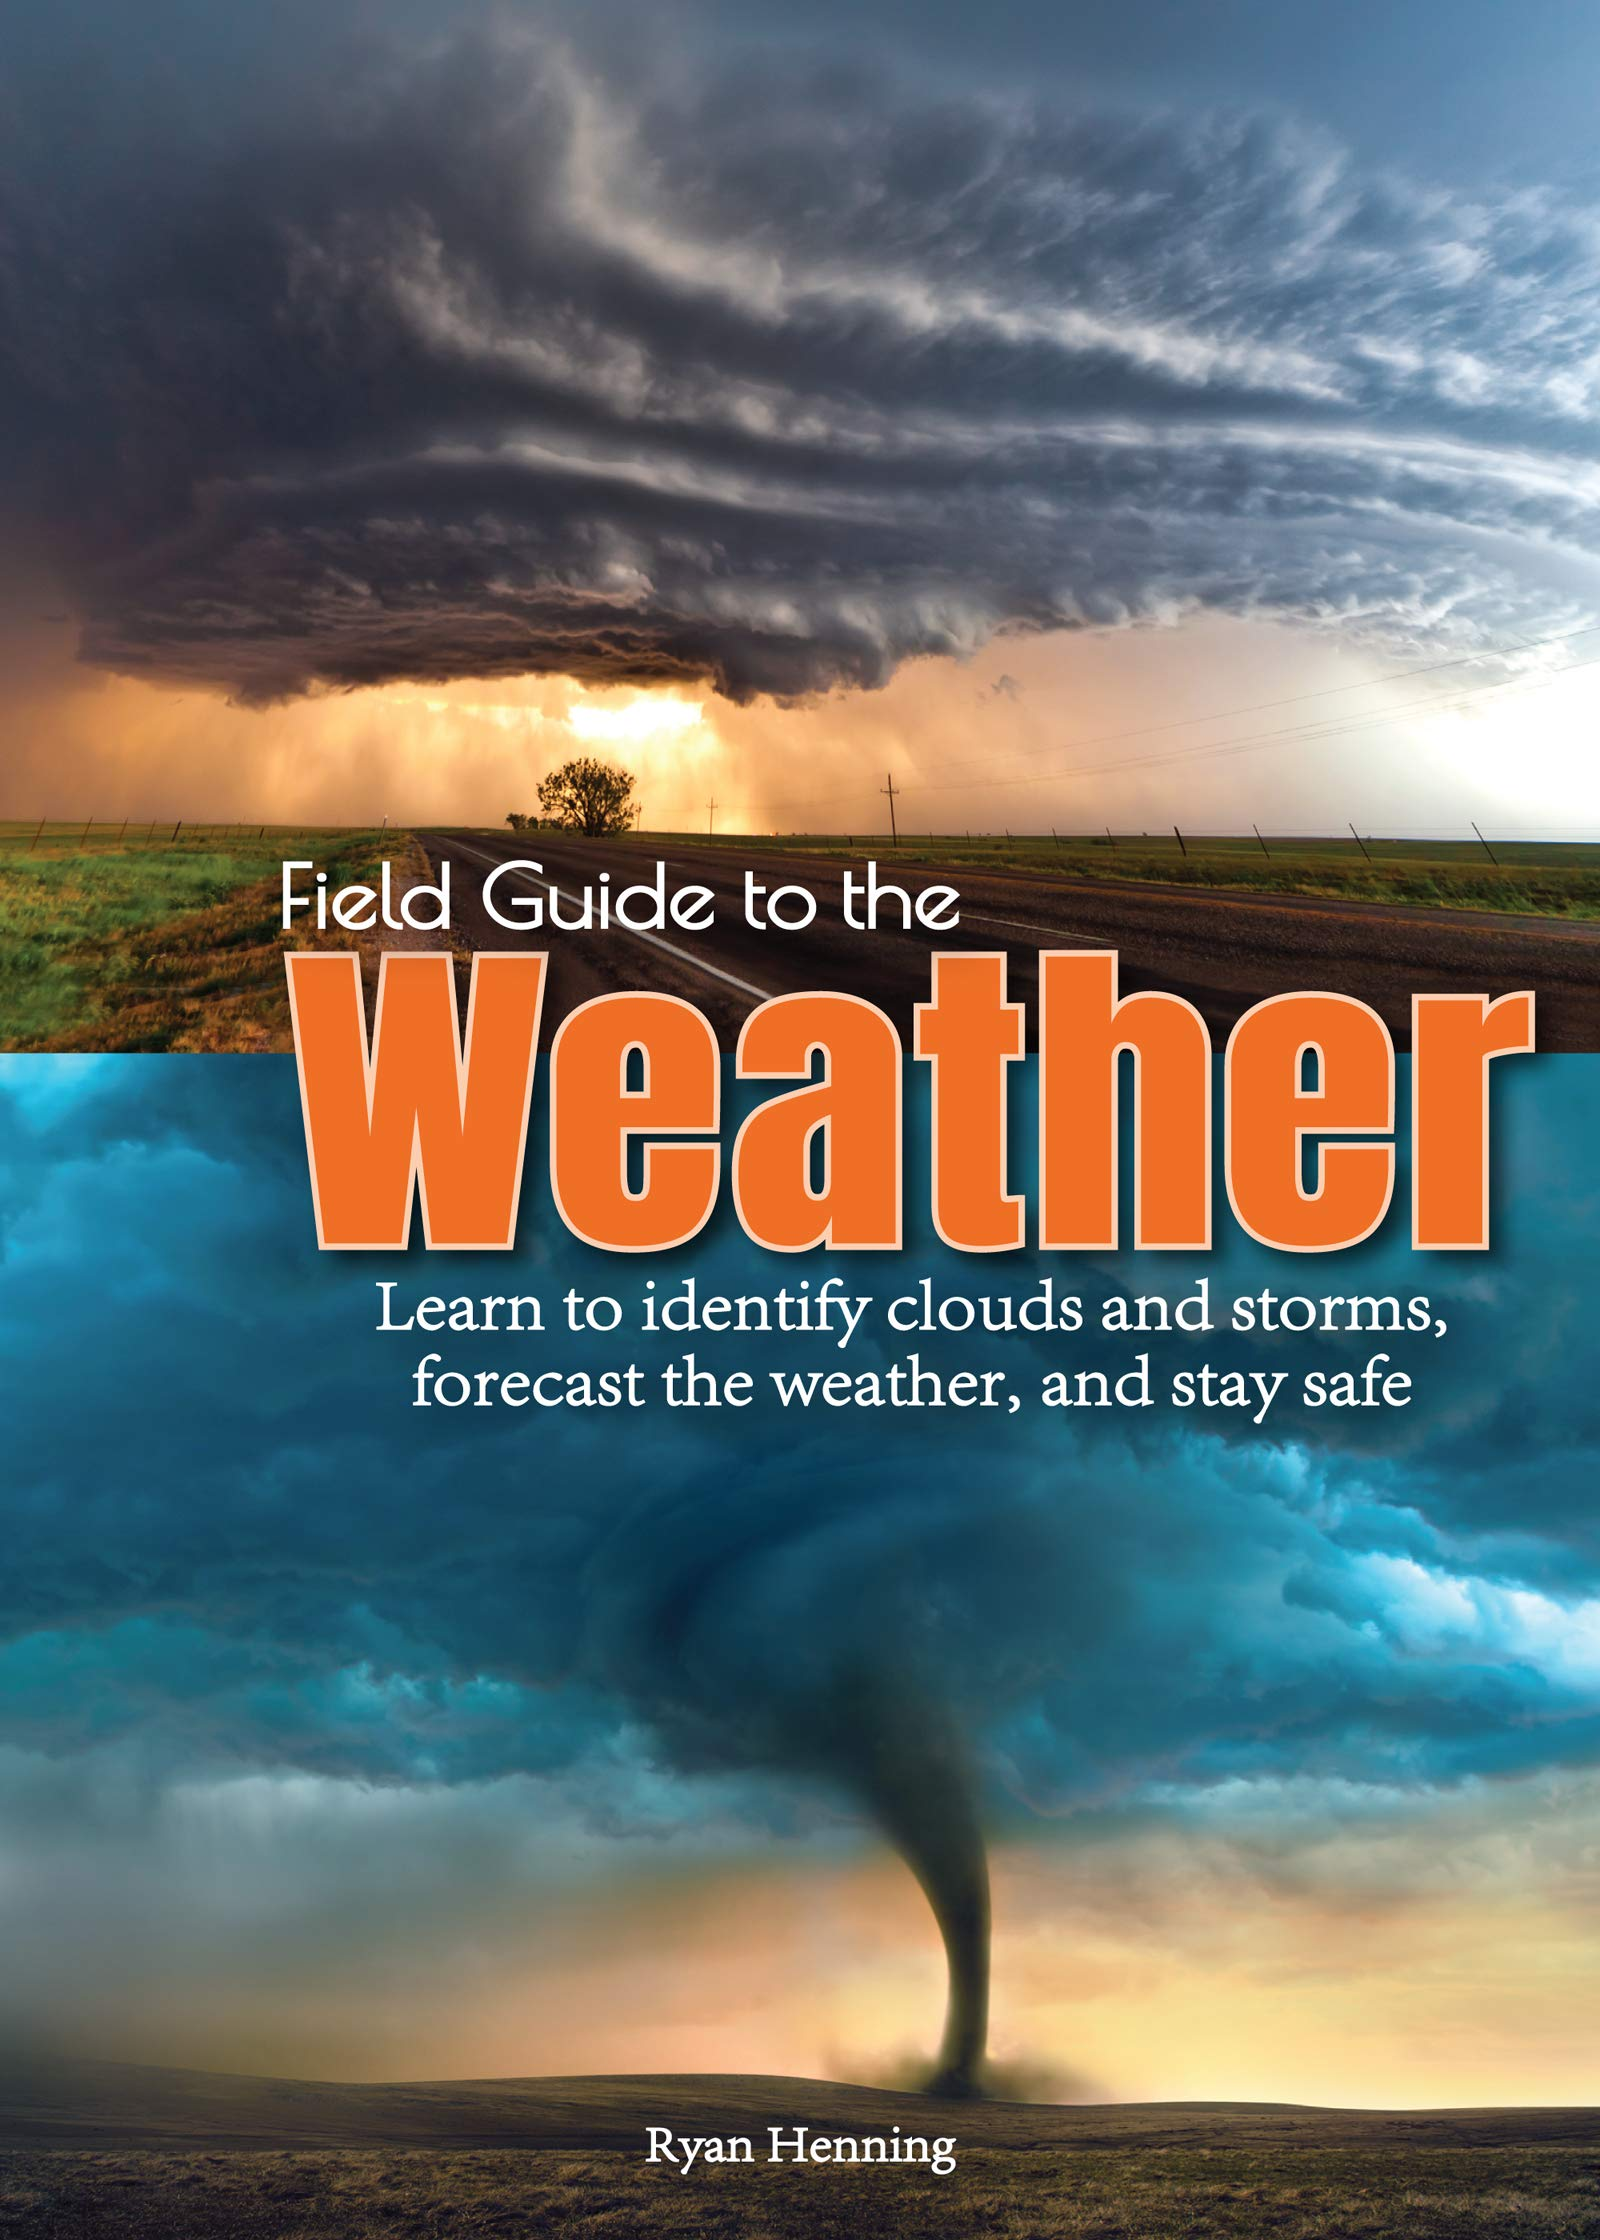 81XqLza74UL - Field Guide to the Weather: Learn to Identify Clouds and Storms, Forecast the Weather, and Stay Safe